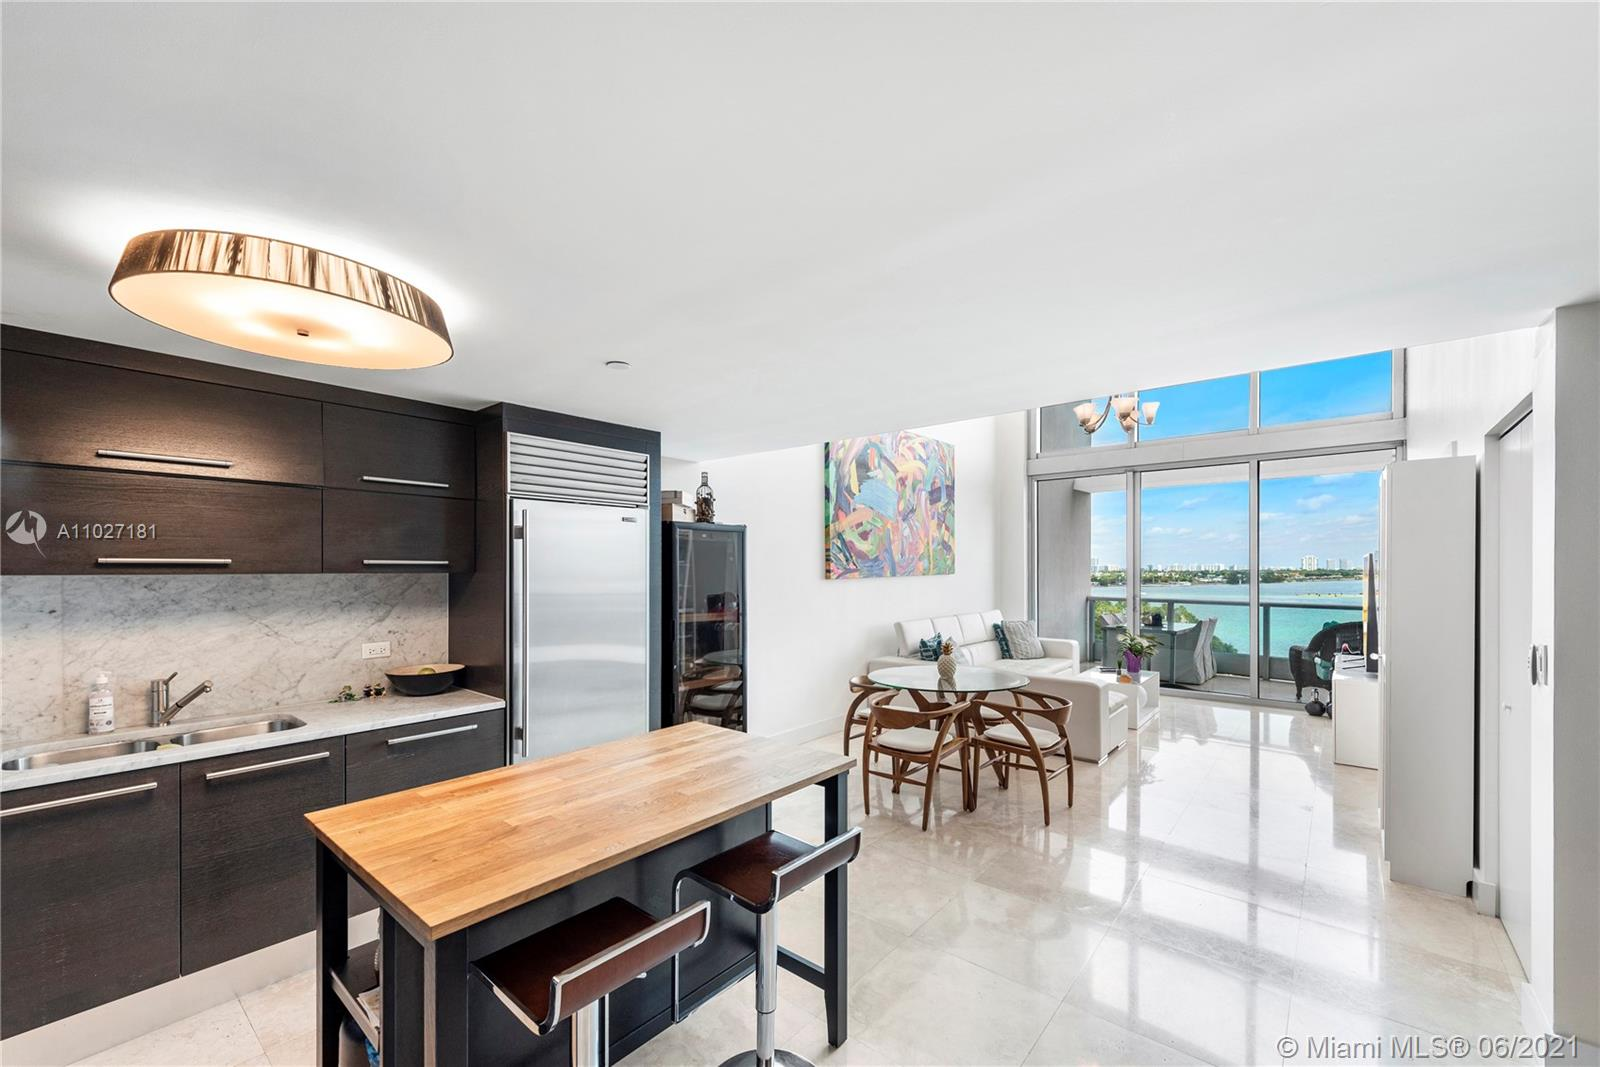 Kitchen / Dining Room / Living/Family Room w/ Biscayne Bay and City Views